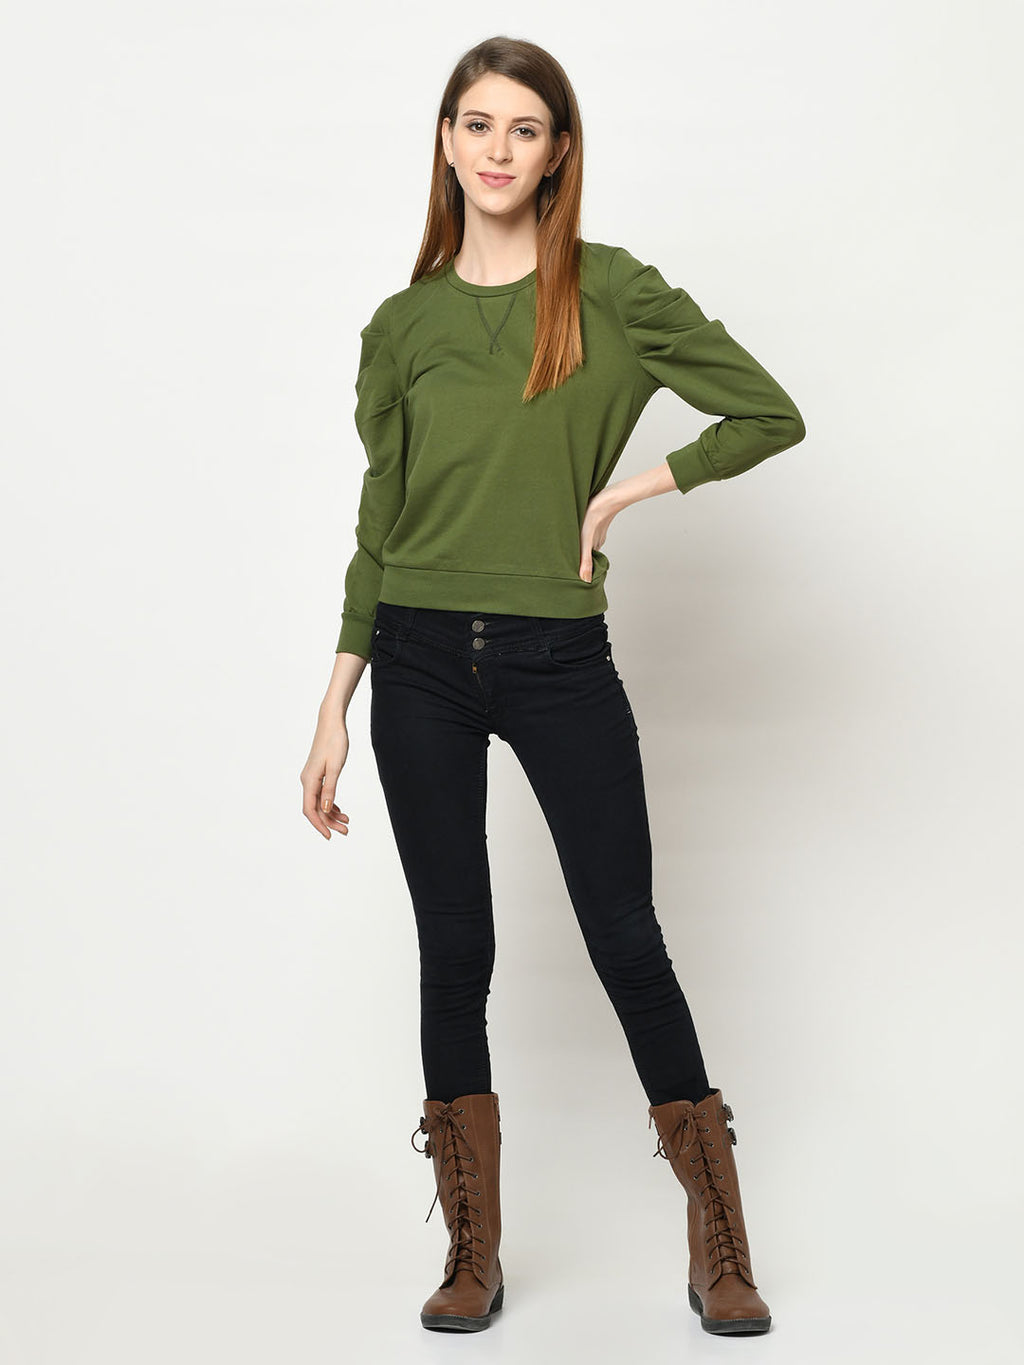 Olive Green Gigot Sleeve Top